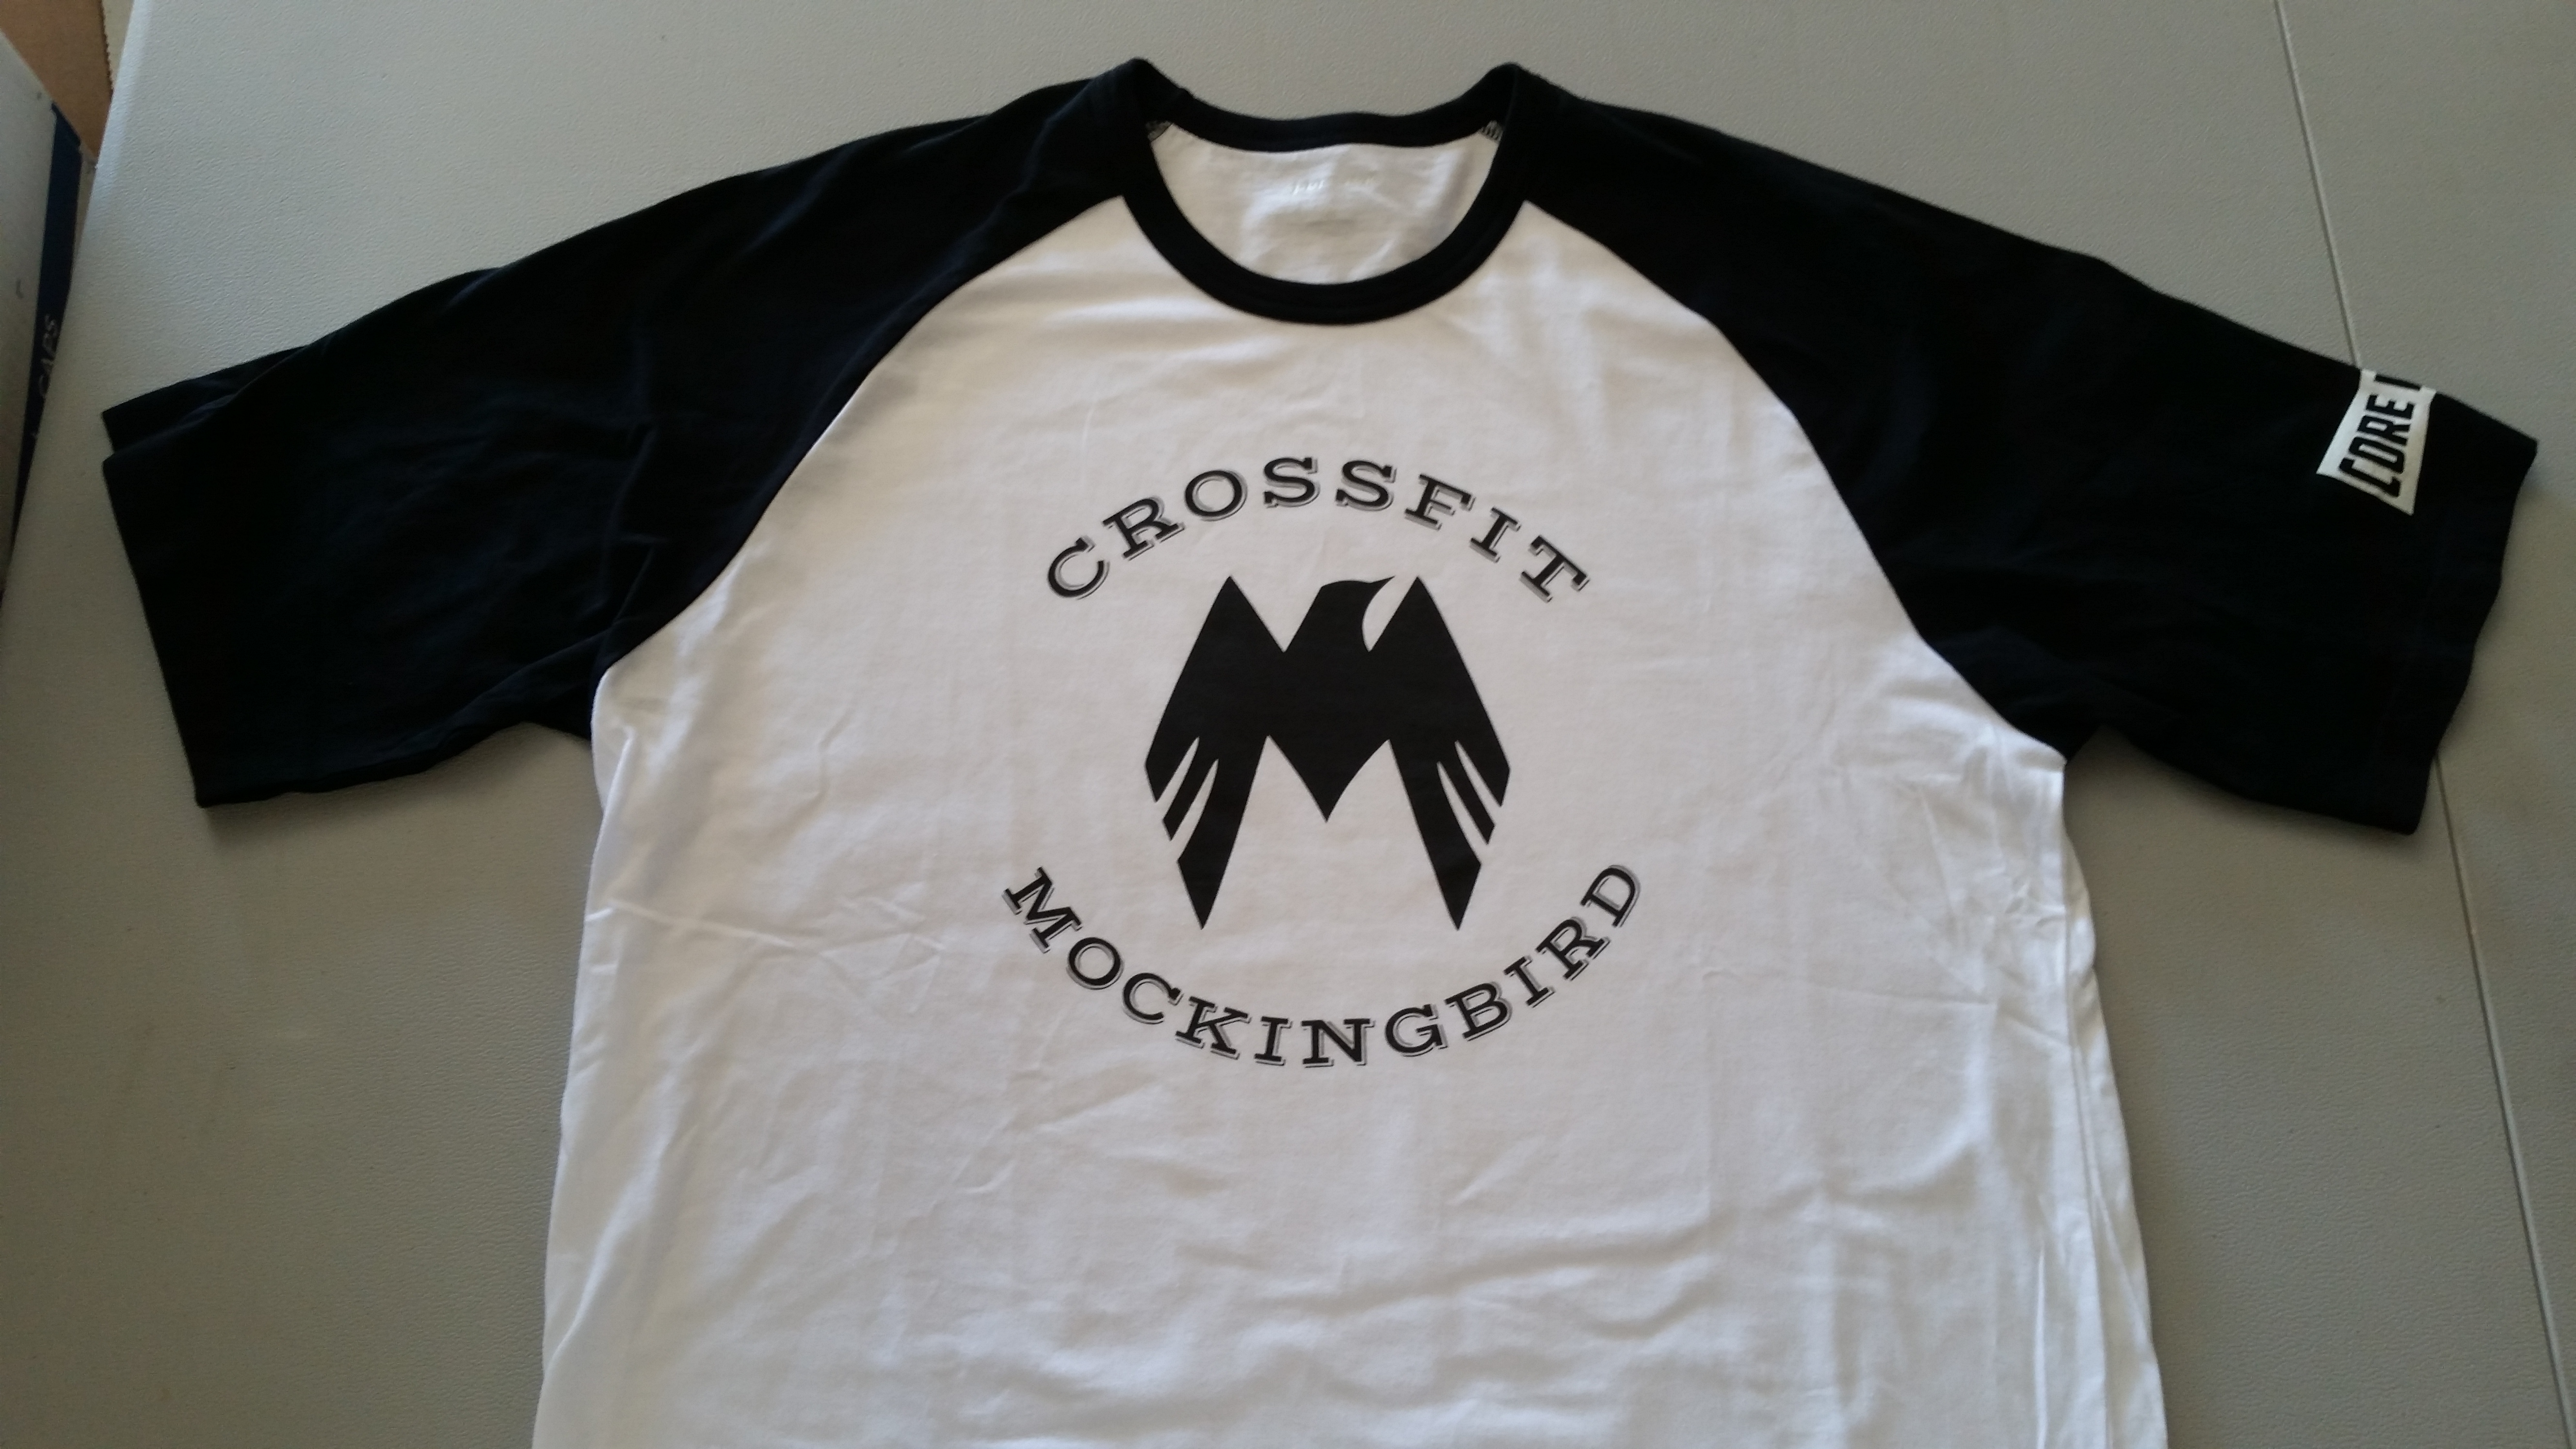 Crossfit Gym Shirts